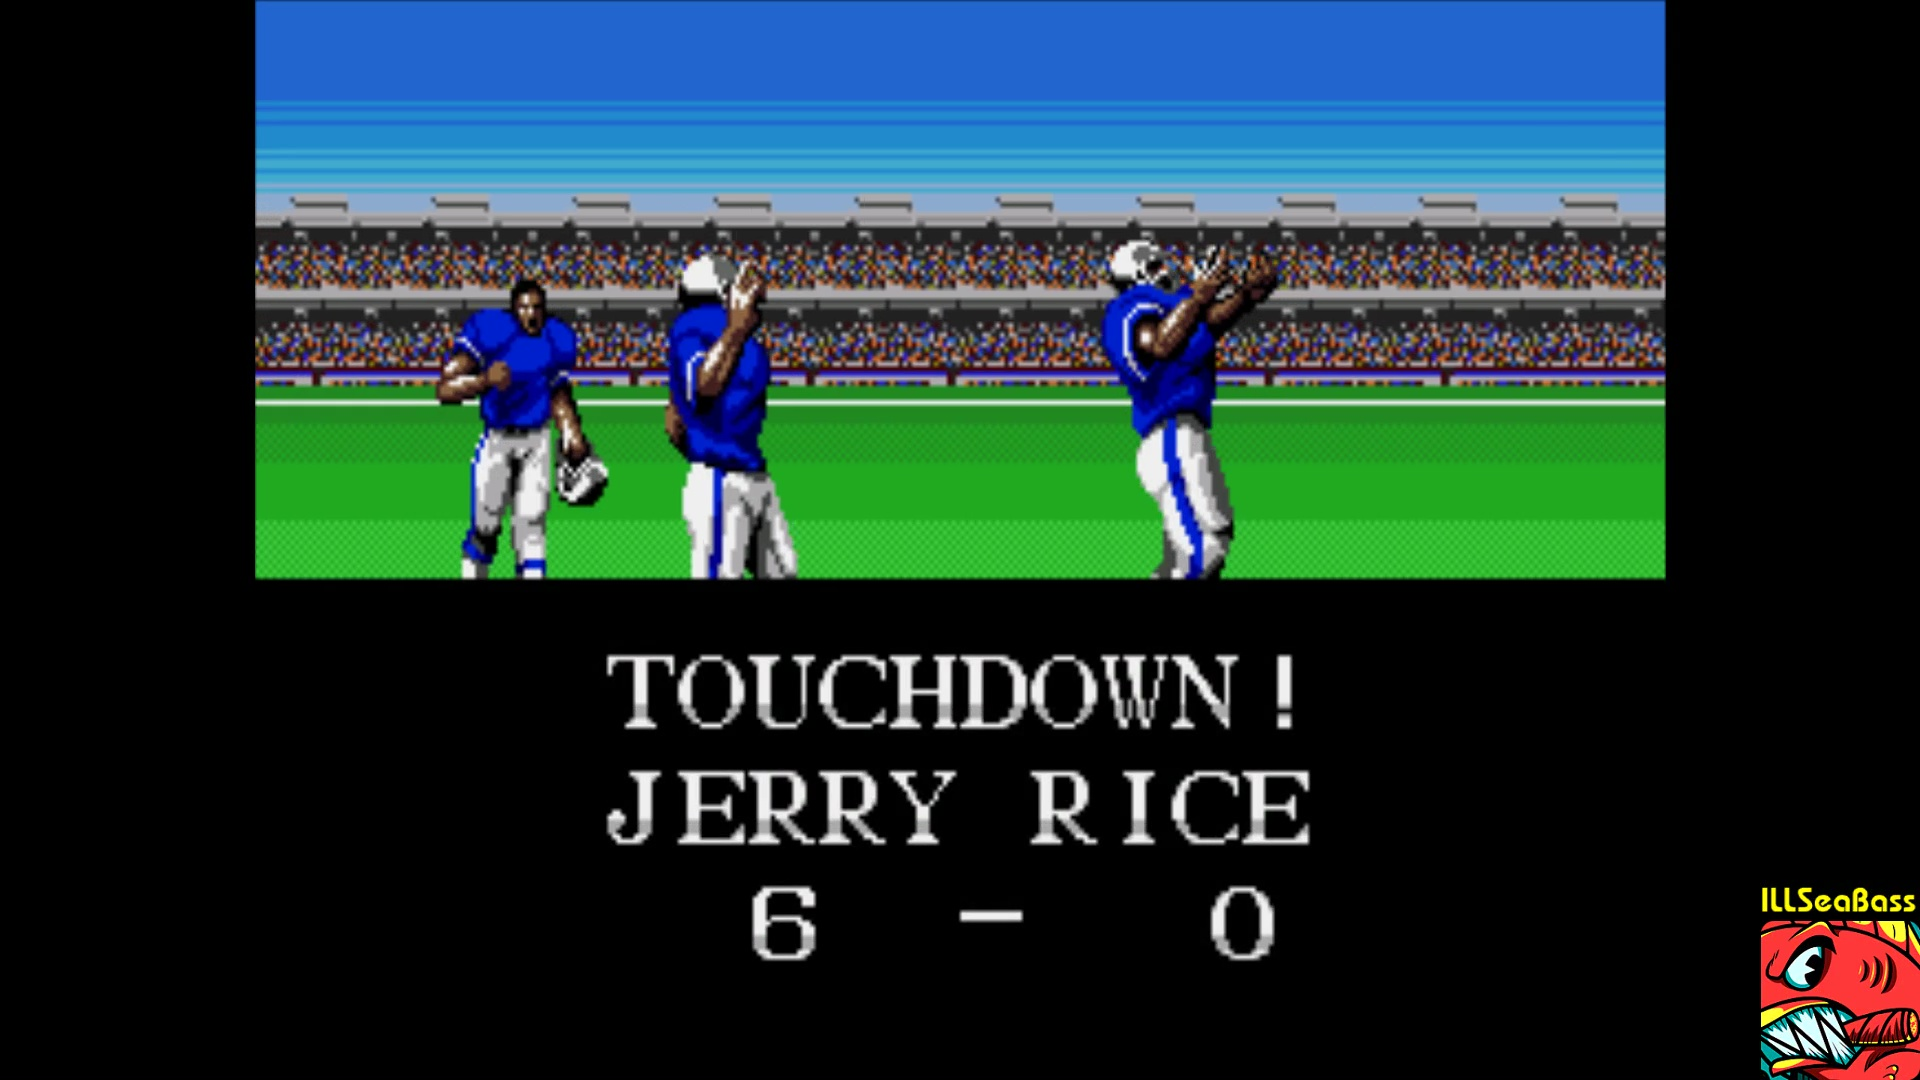 ILLSeaBass: Tecmo Super Bowl [Most Receiving Yards] [Pro Bowl] (Sega Genesis / MegaDrive Emulated) 406 points on 2018-01-29 00:21:53